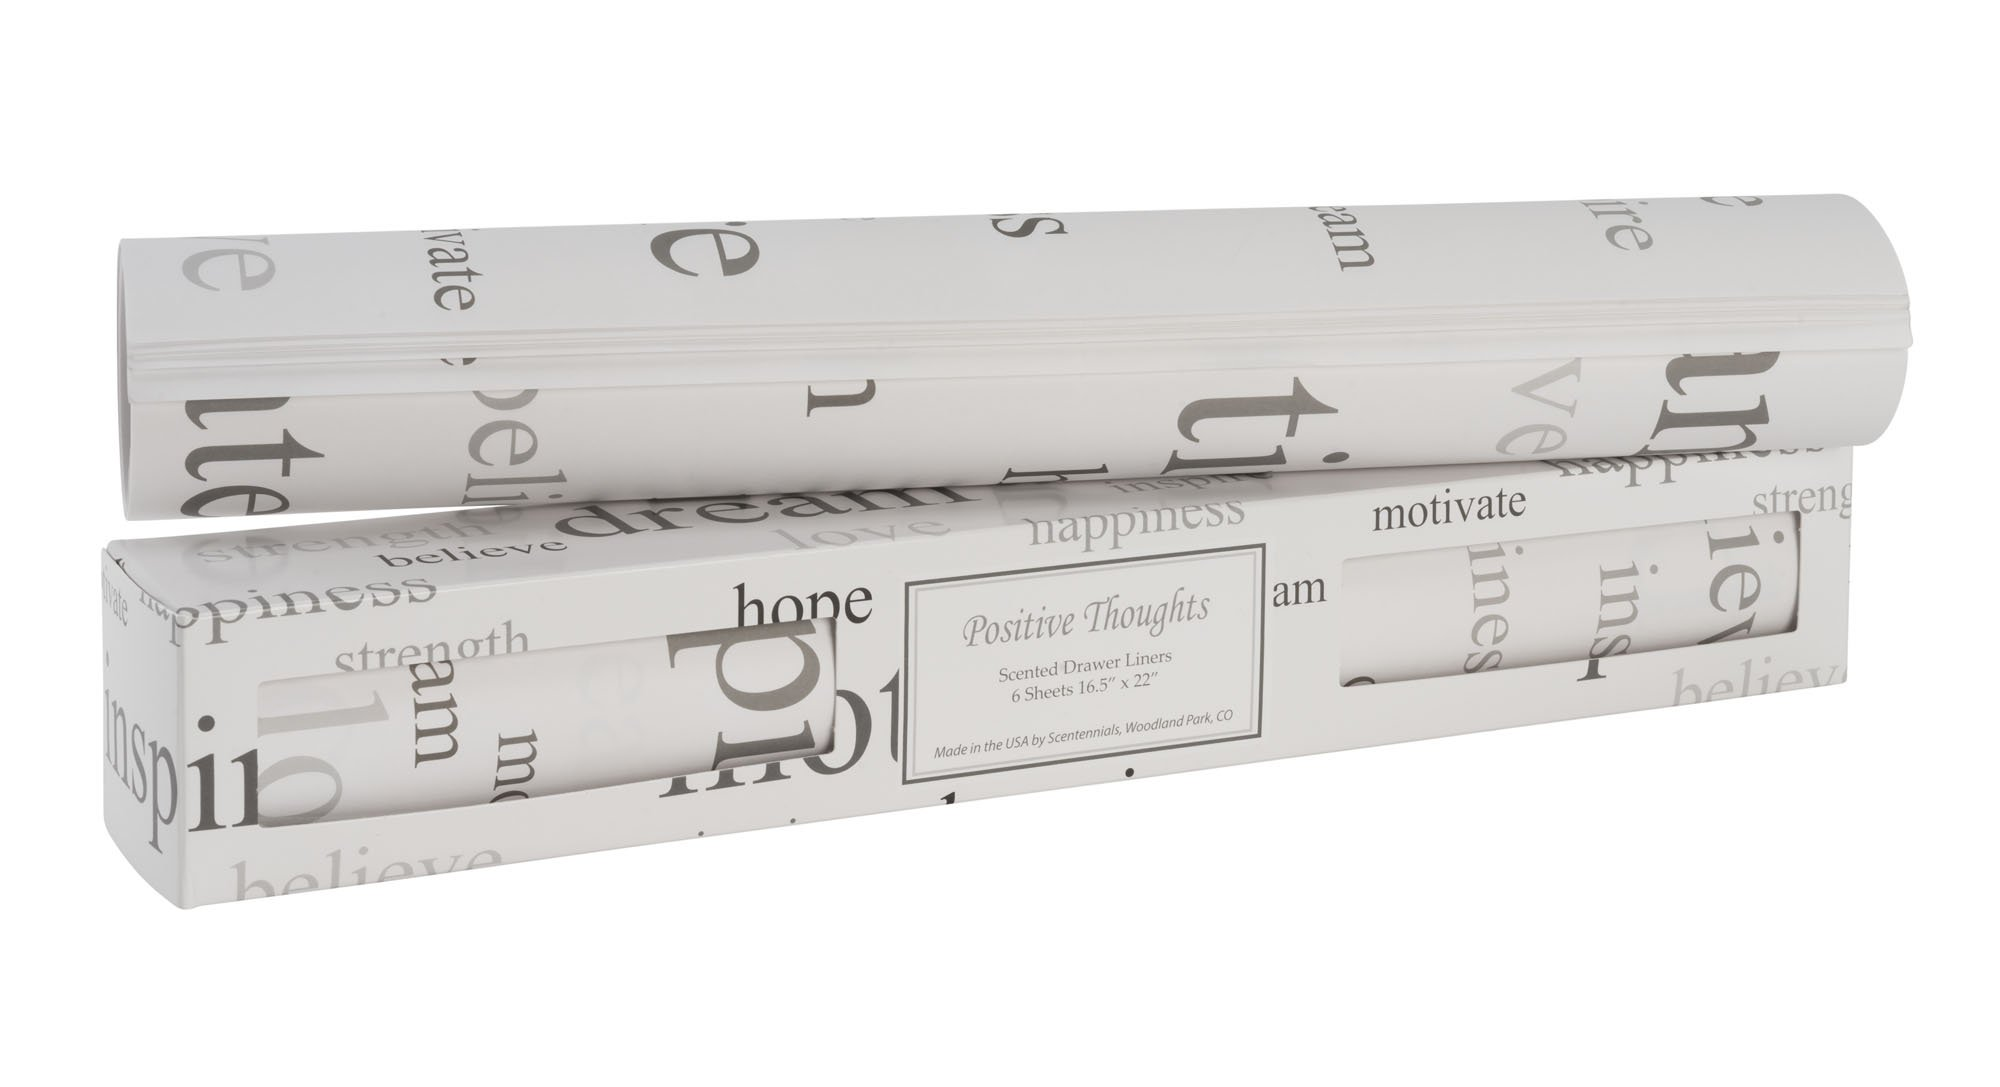 Scentennials Positive Thoughts (12 Sheets) Scented Drawer Liners by Scentennials Scented Drawer Liners